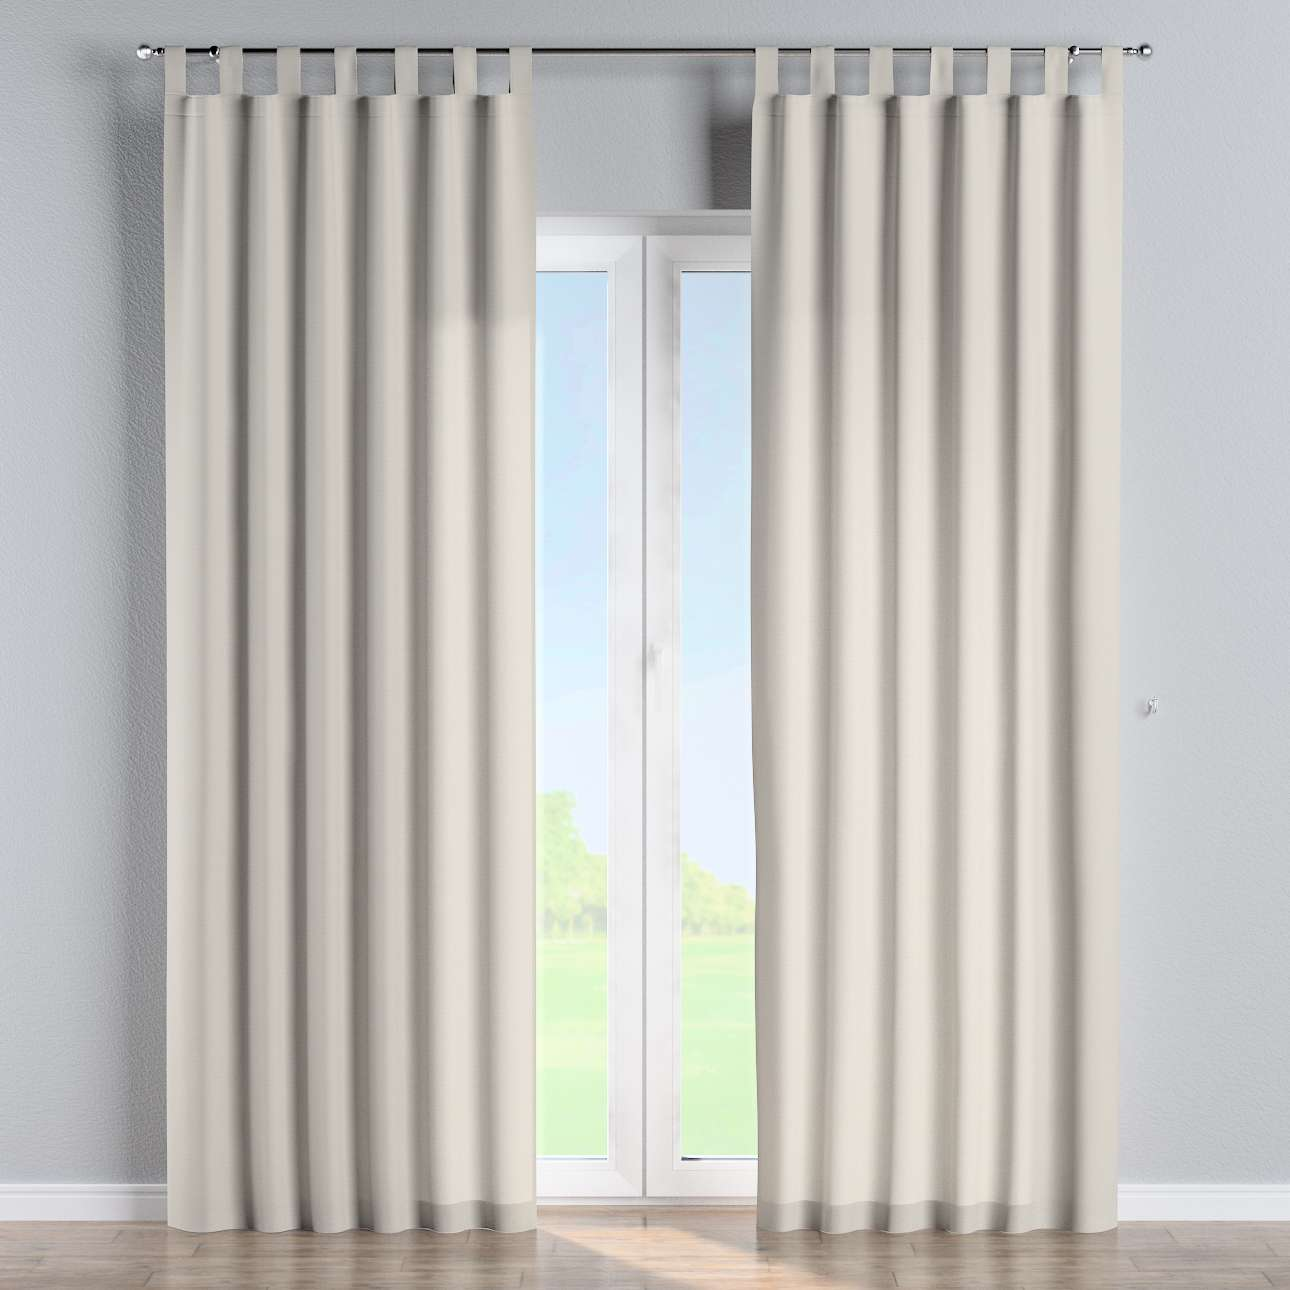 Tab top curtains 130 × 260 cm (51 × 102 inch) in collection Panama Cotton, fabric: 702-31